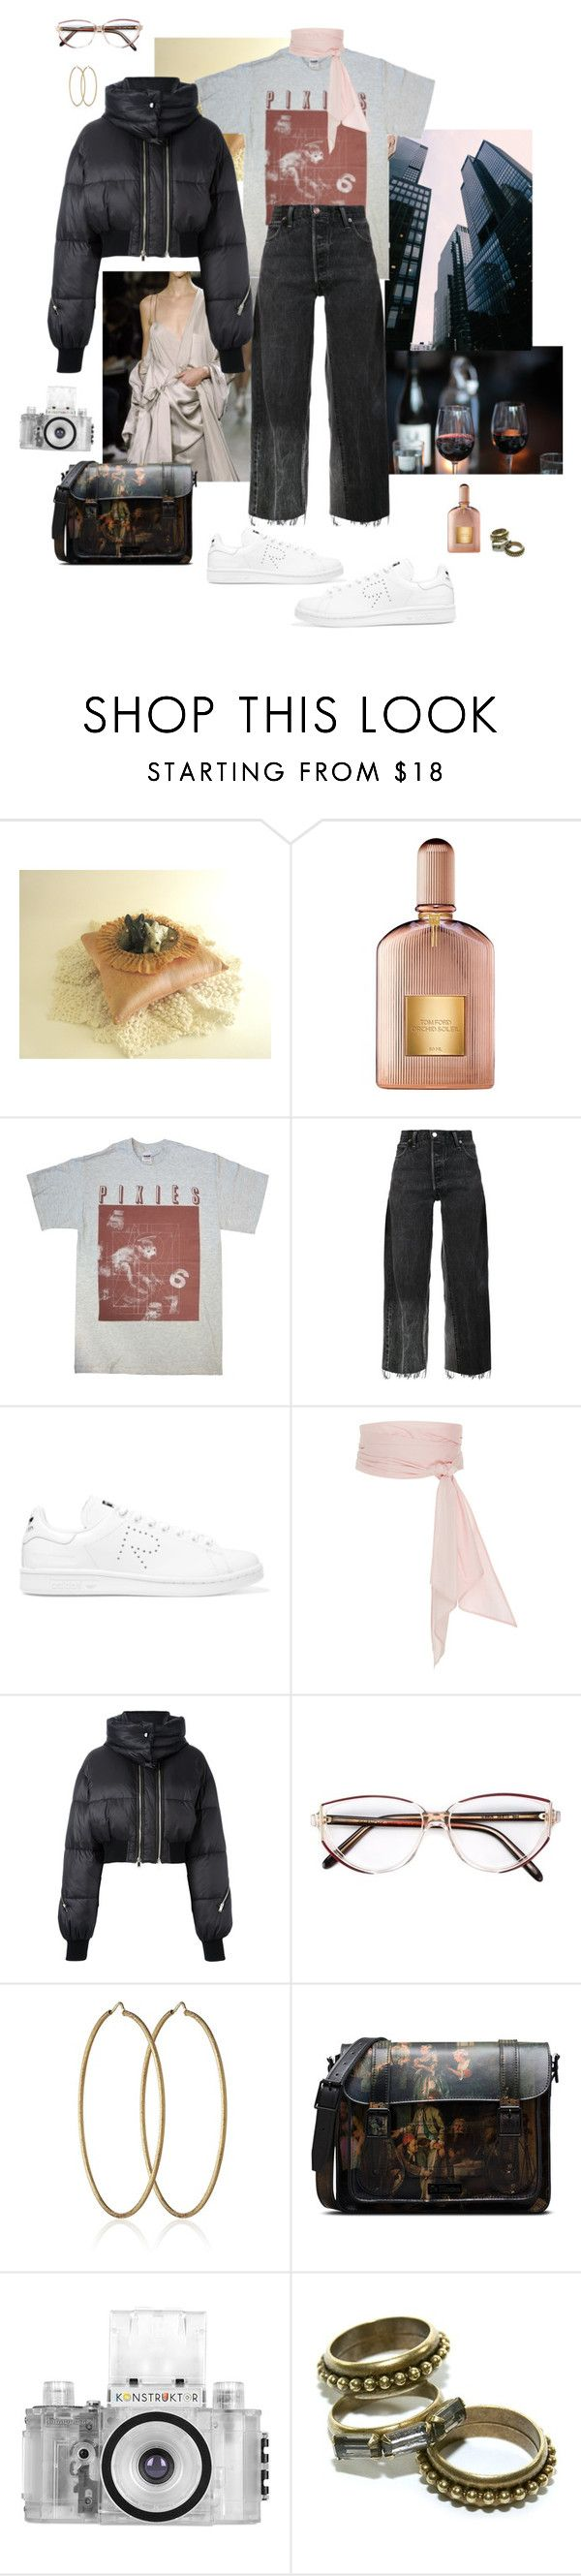 """styling jobs in Japan for a week; Day 5"" by syarina ❤ liked on Polyvore featuring Tom Ford, RE/DONE, adidas Originals, MDS Stripes, STELLA McCARTNEY, Givenchy, Carolina Bucci, Dr. Martens, Lomography and Flutter By Jill Golden"